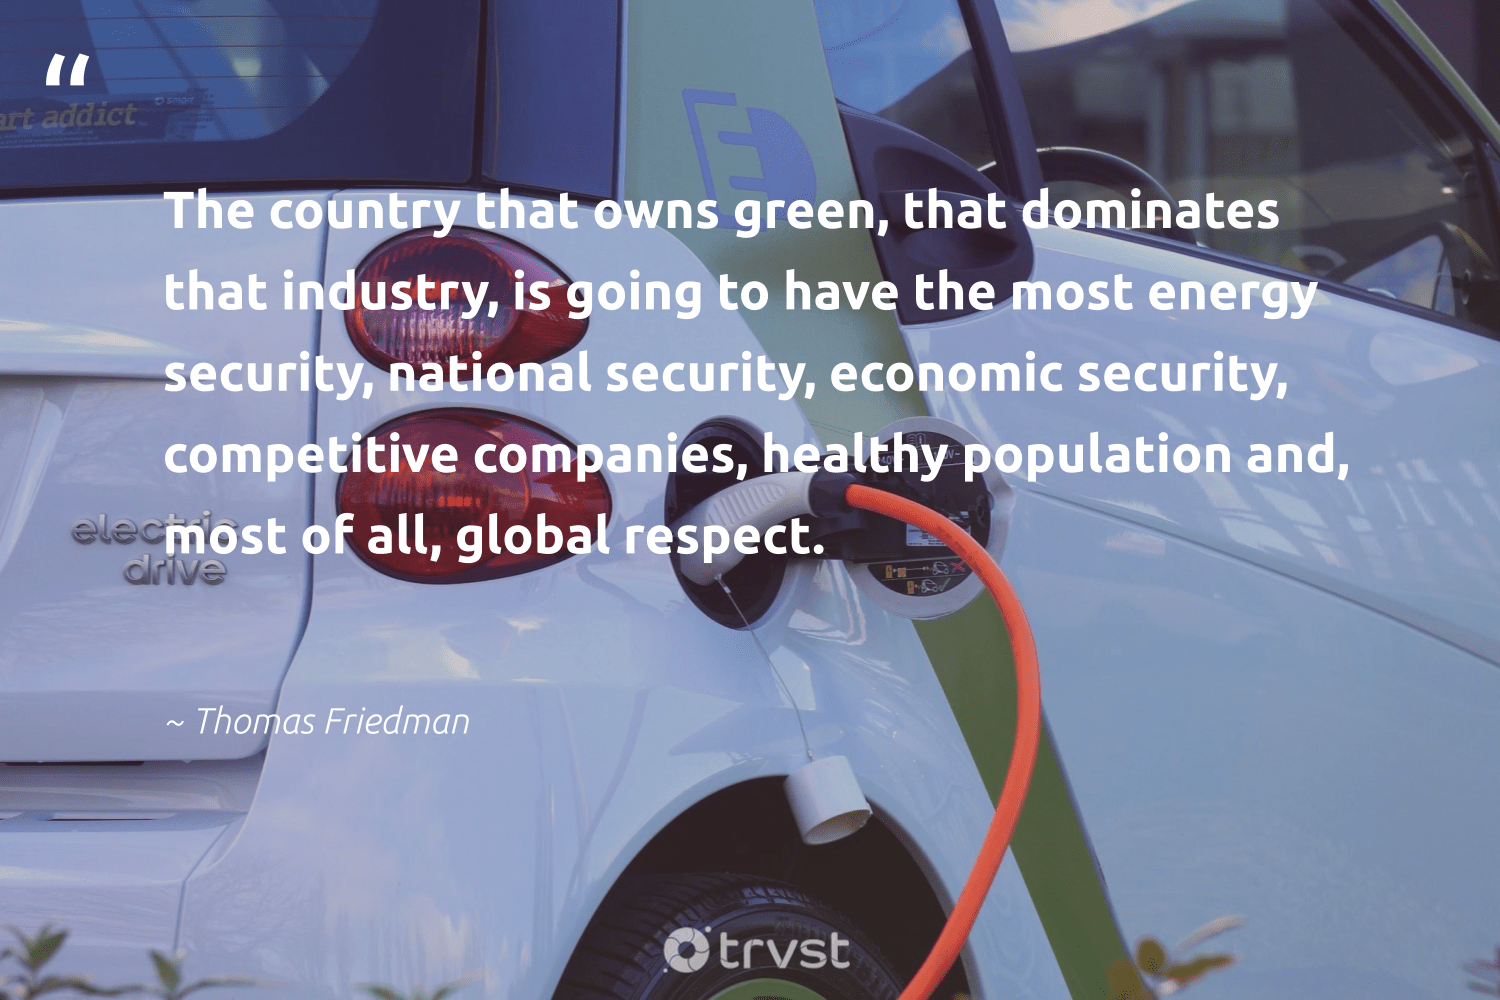 """""""The country that owns green, that dominates that industry, is going to have the most energy security, national security, economic security, competitive companies, healthy population and, most of all, global respect.""""  - Thomas Friedman #trvst #quotes #green #energy #healthy #wellbeing #livegreen #changemakers #takeaction #health #climateaction #nevergiveup"""